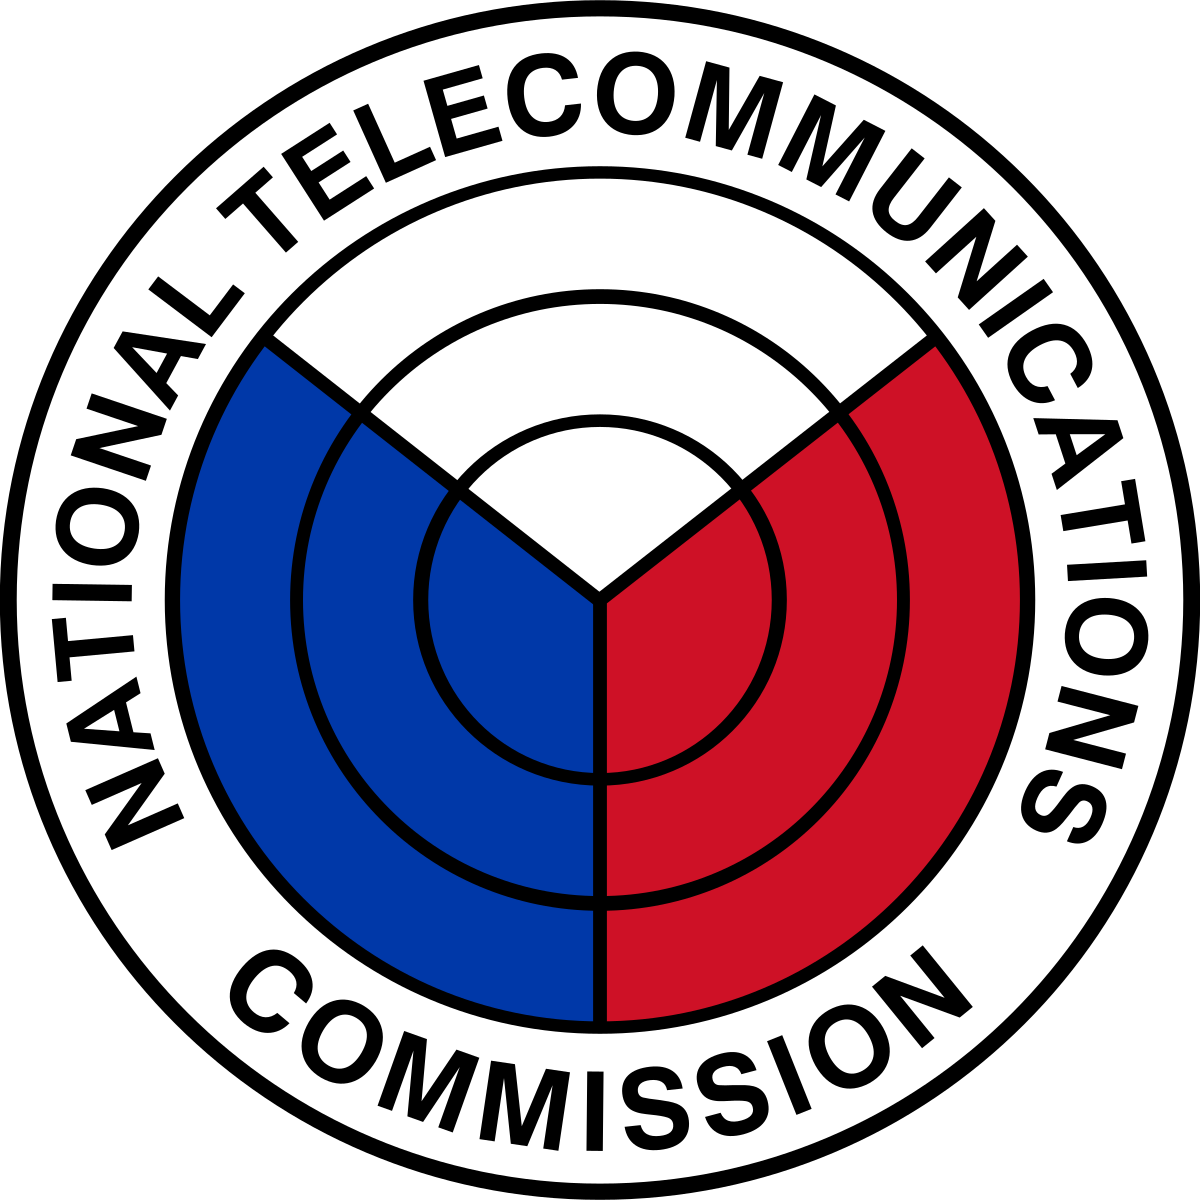 National Telecommunications Commission (Philippines).